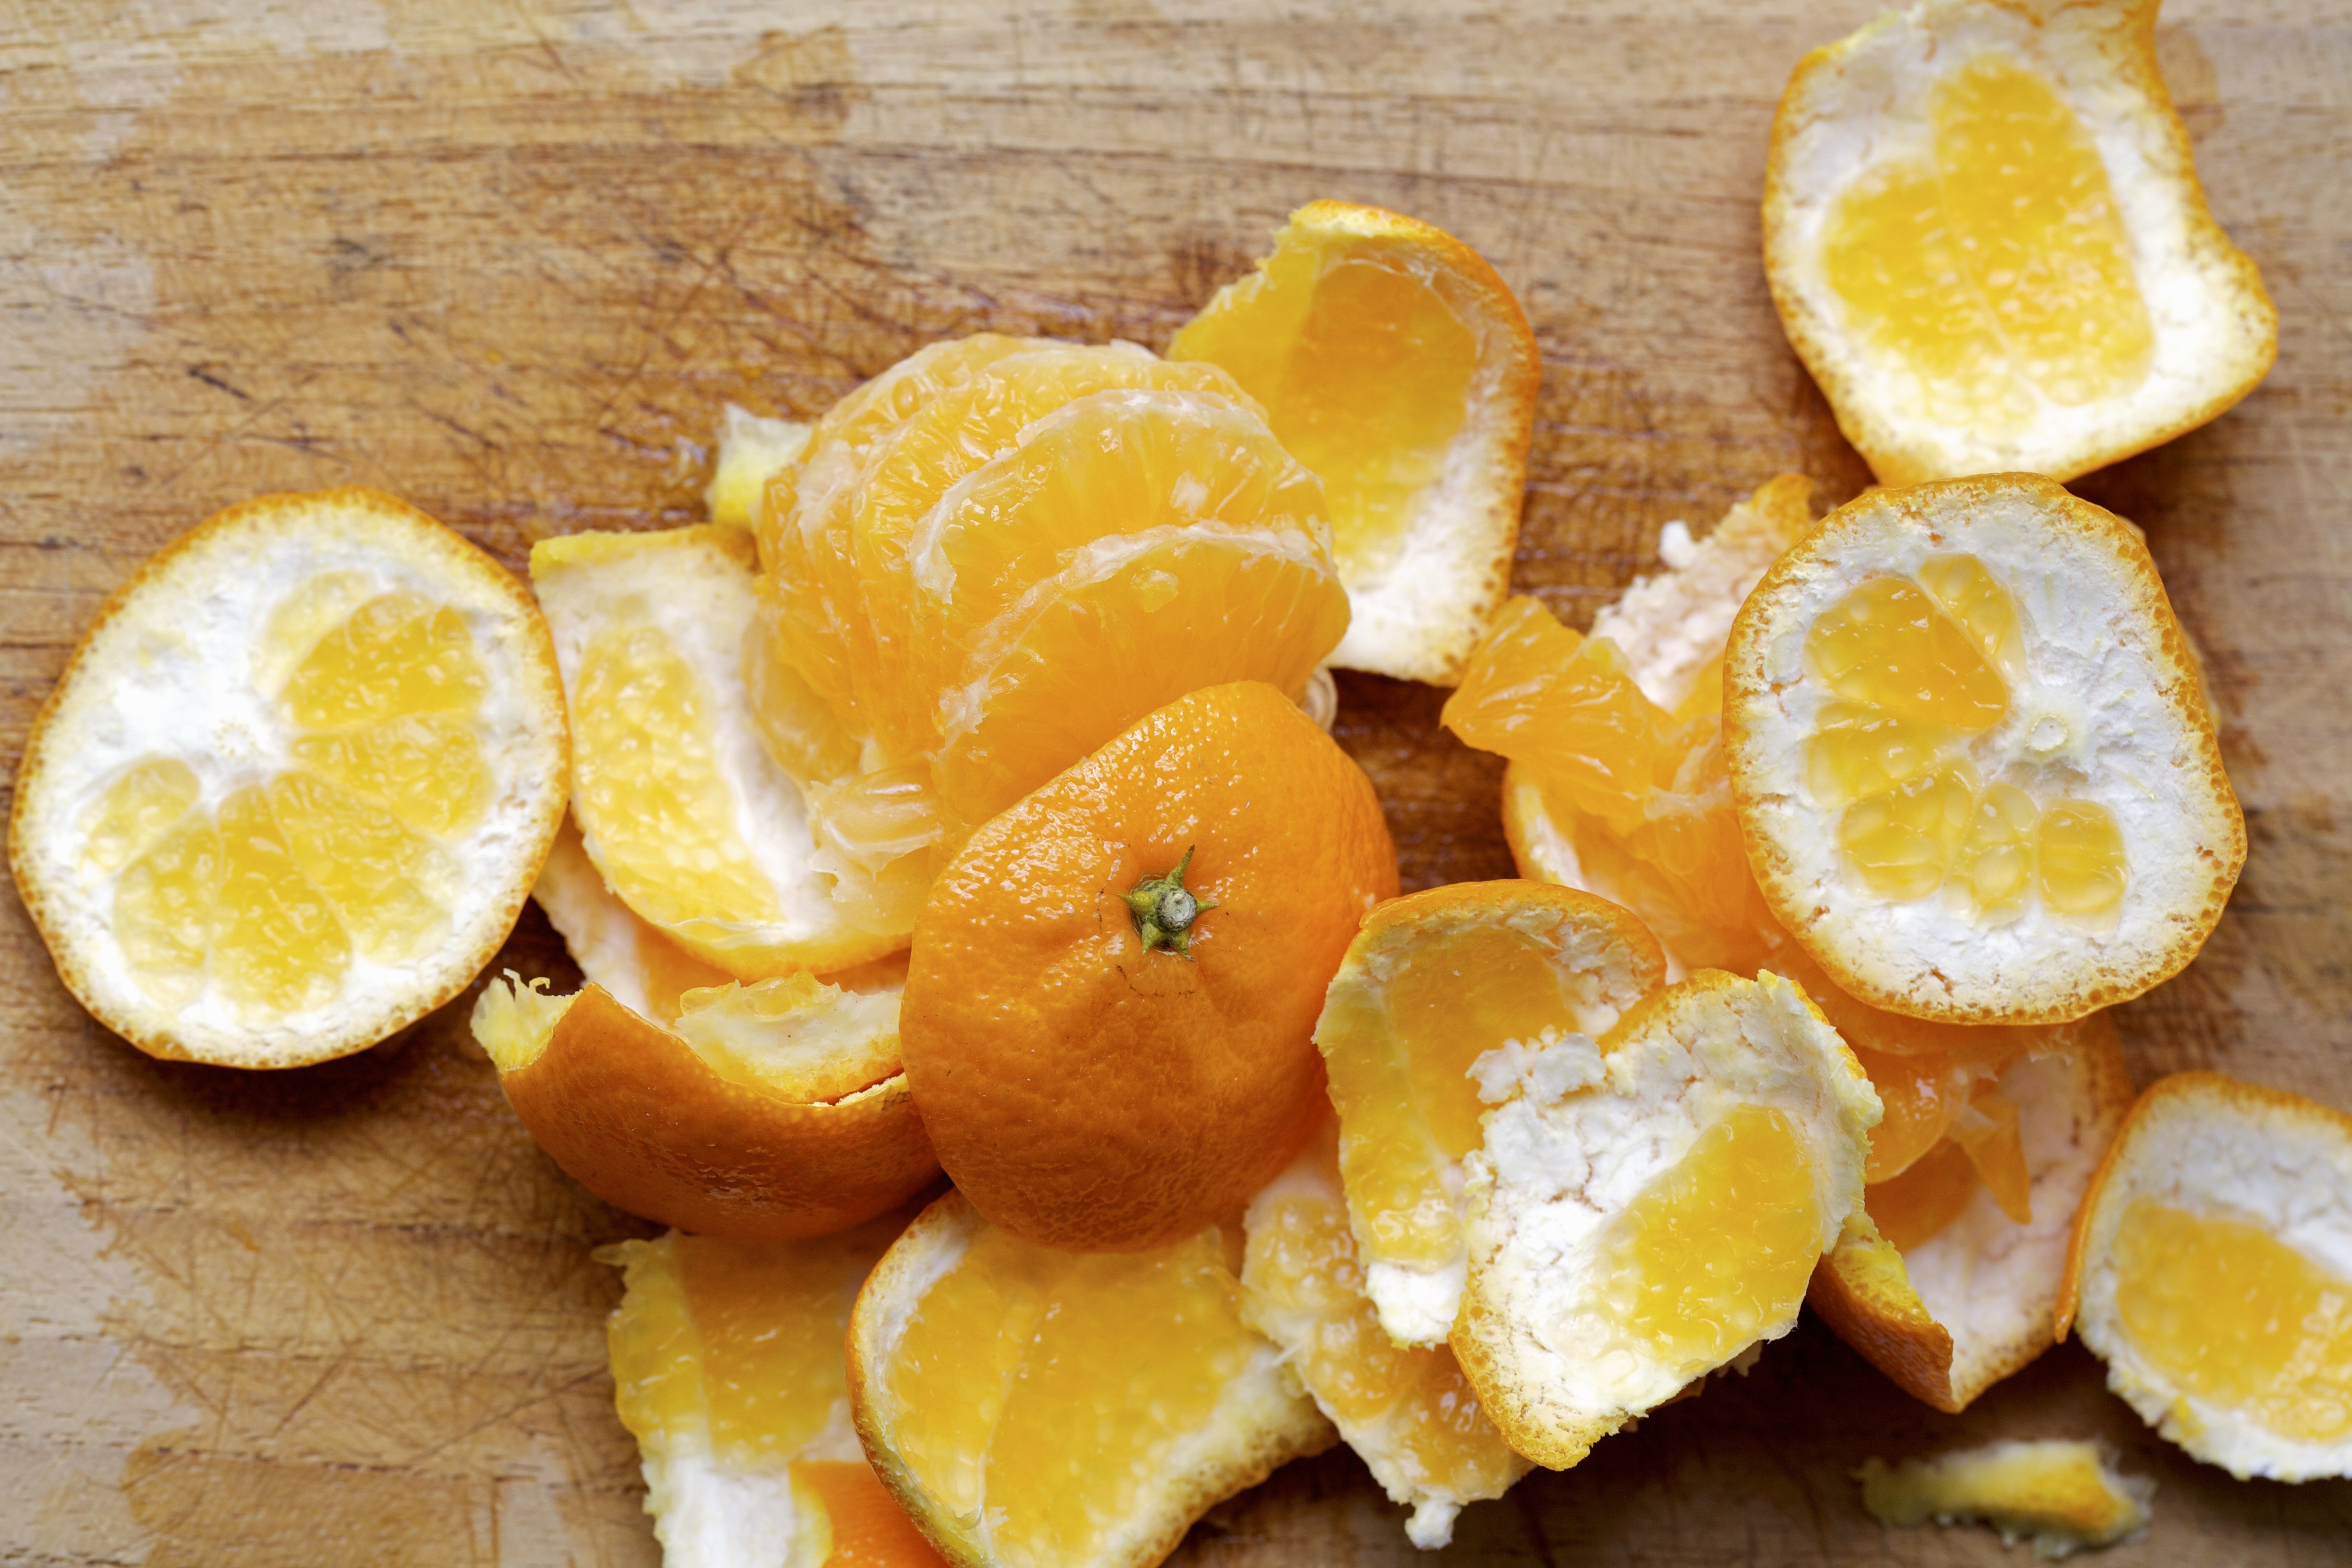 What's Beneficial in an Orange?